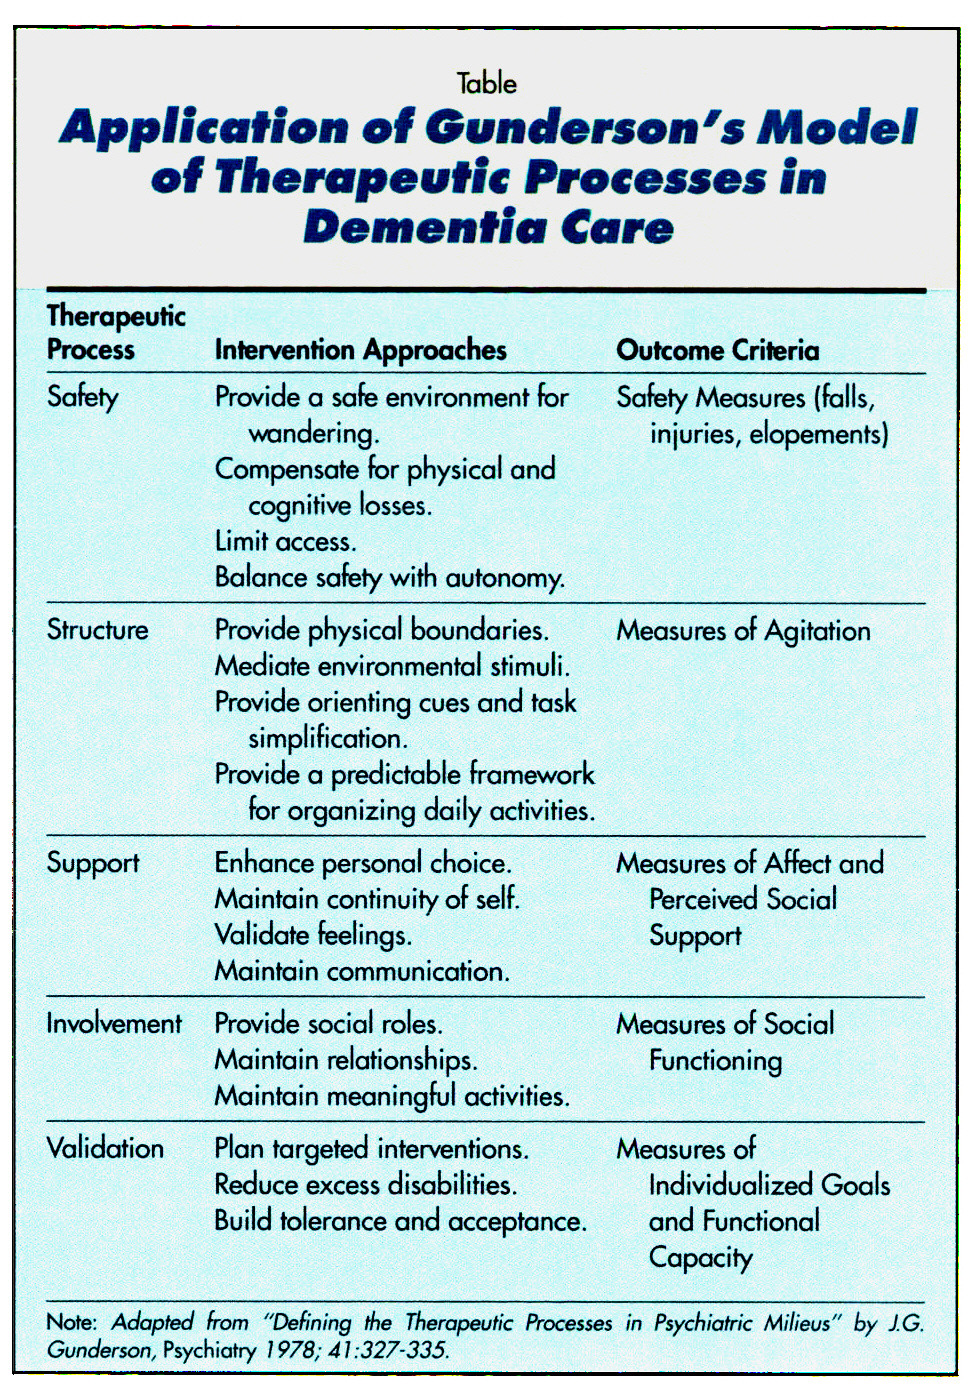 TableApplication of Gunderson's Model of Therapeutic Processes in Dementia Care